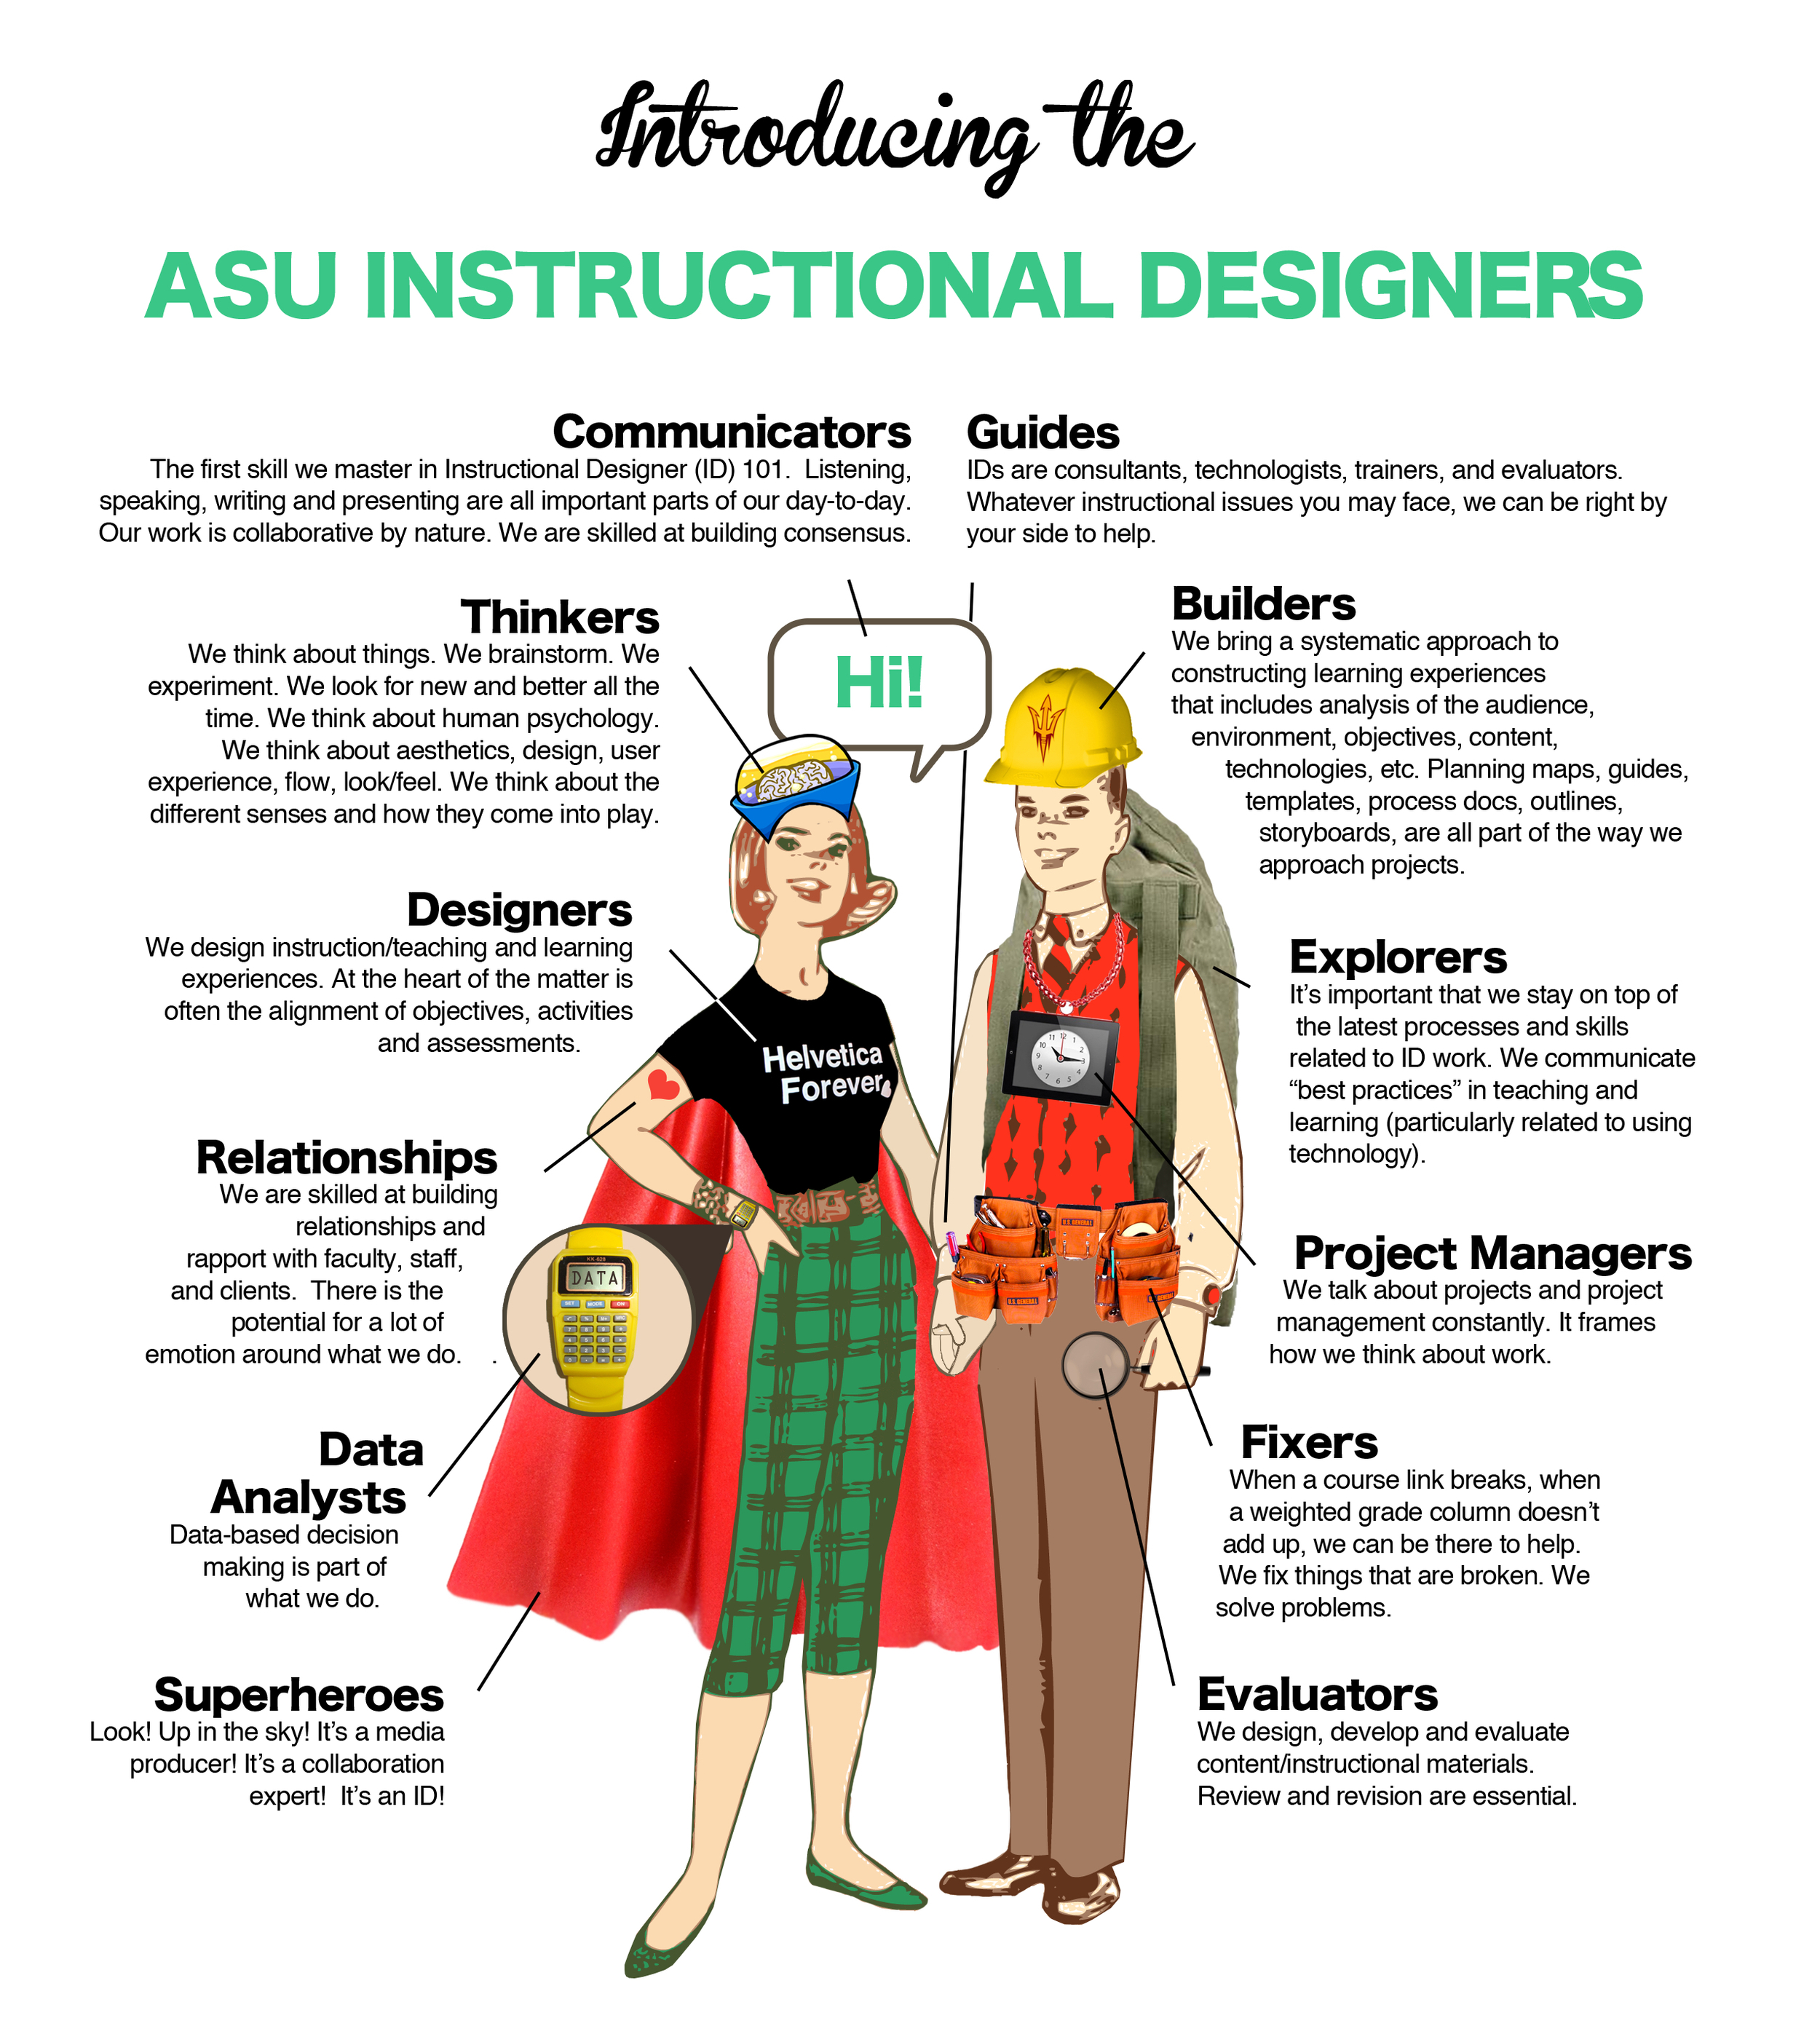 Meet the superhero IDs of Arizona State University.Who wouldn't want these folks at their side when building a course?!